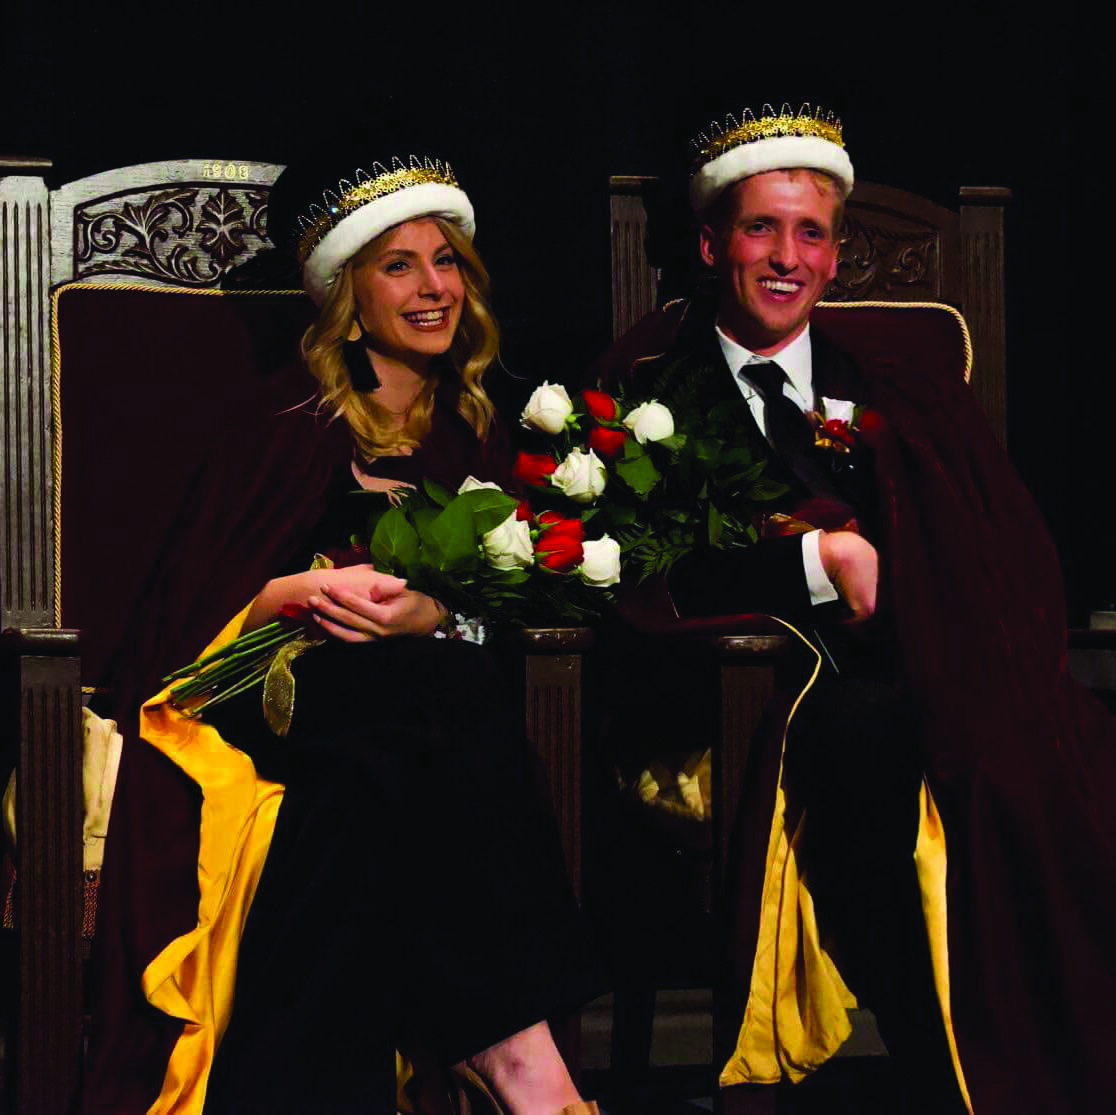 Homecoming week brings crowning of Herberg and Belz